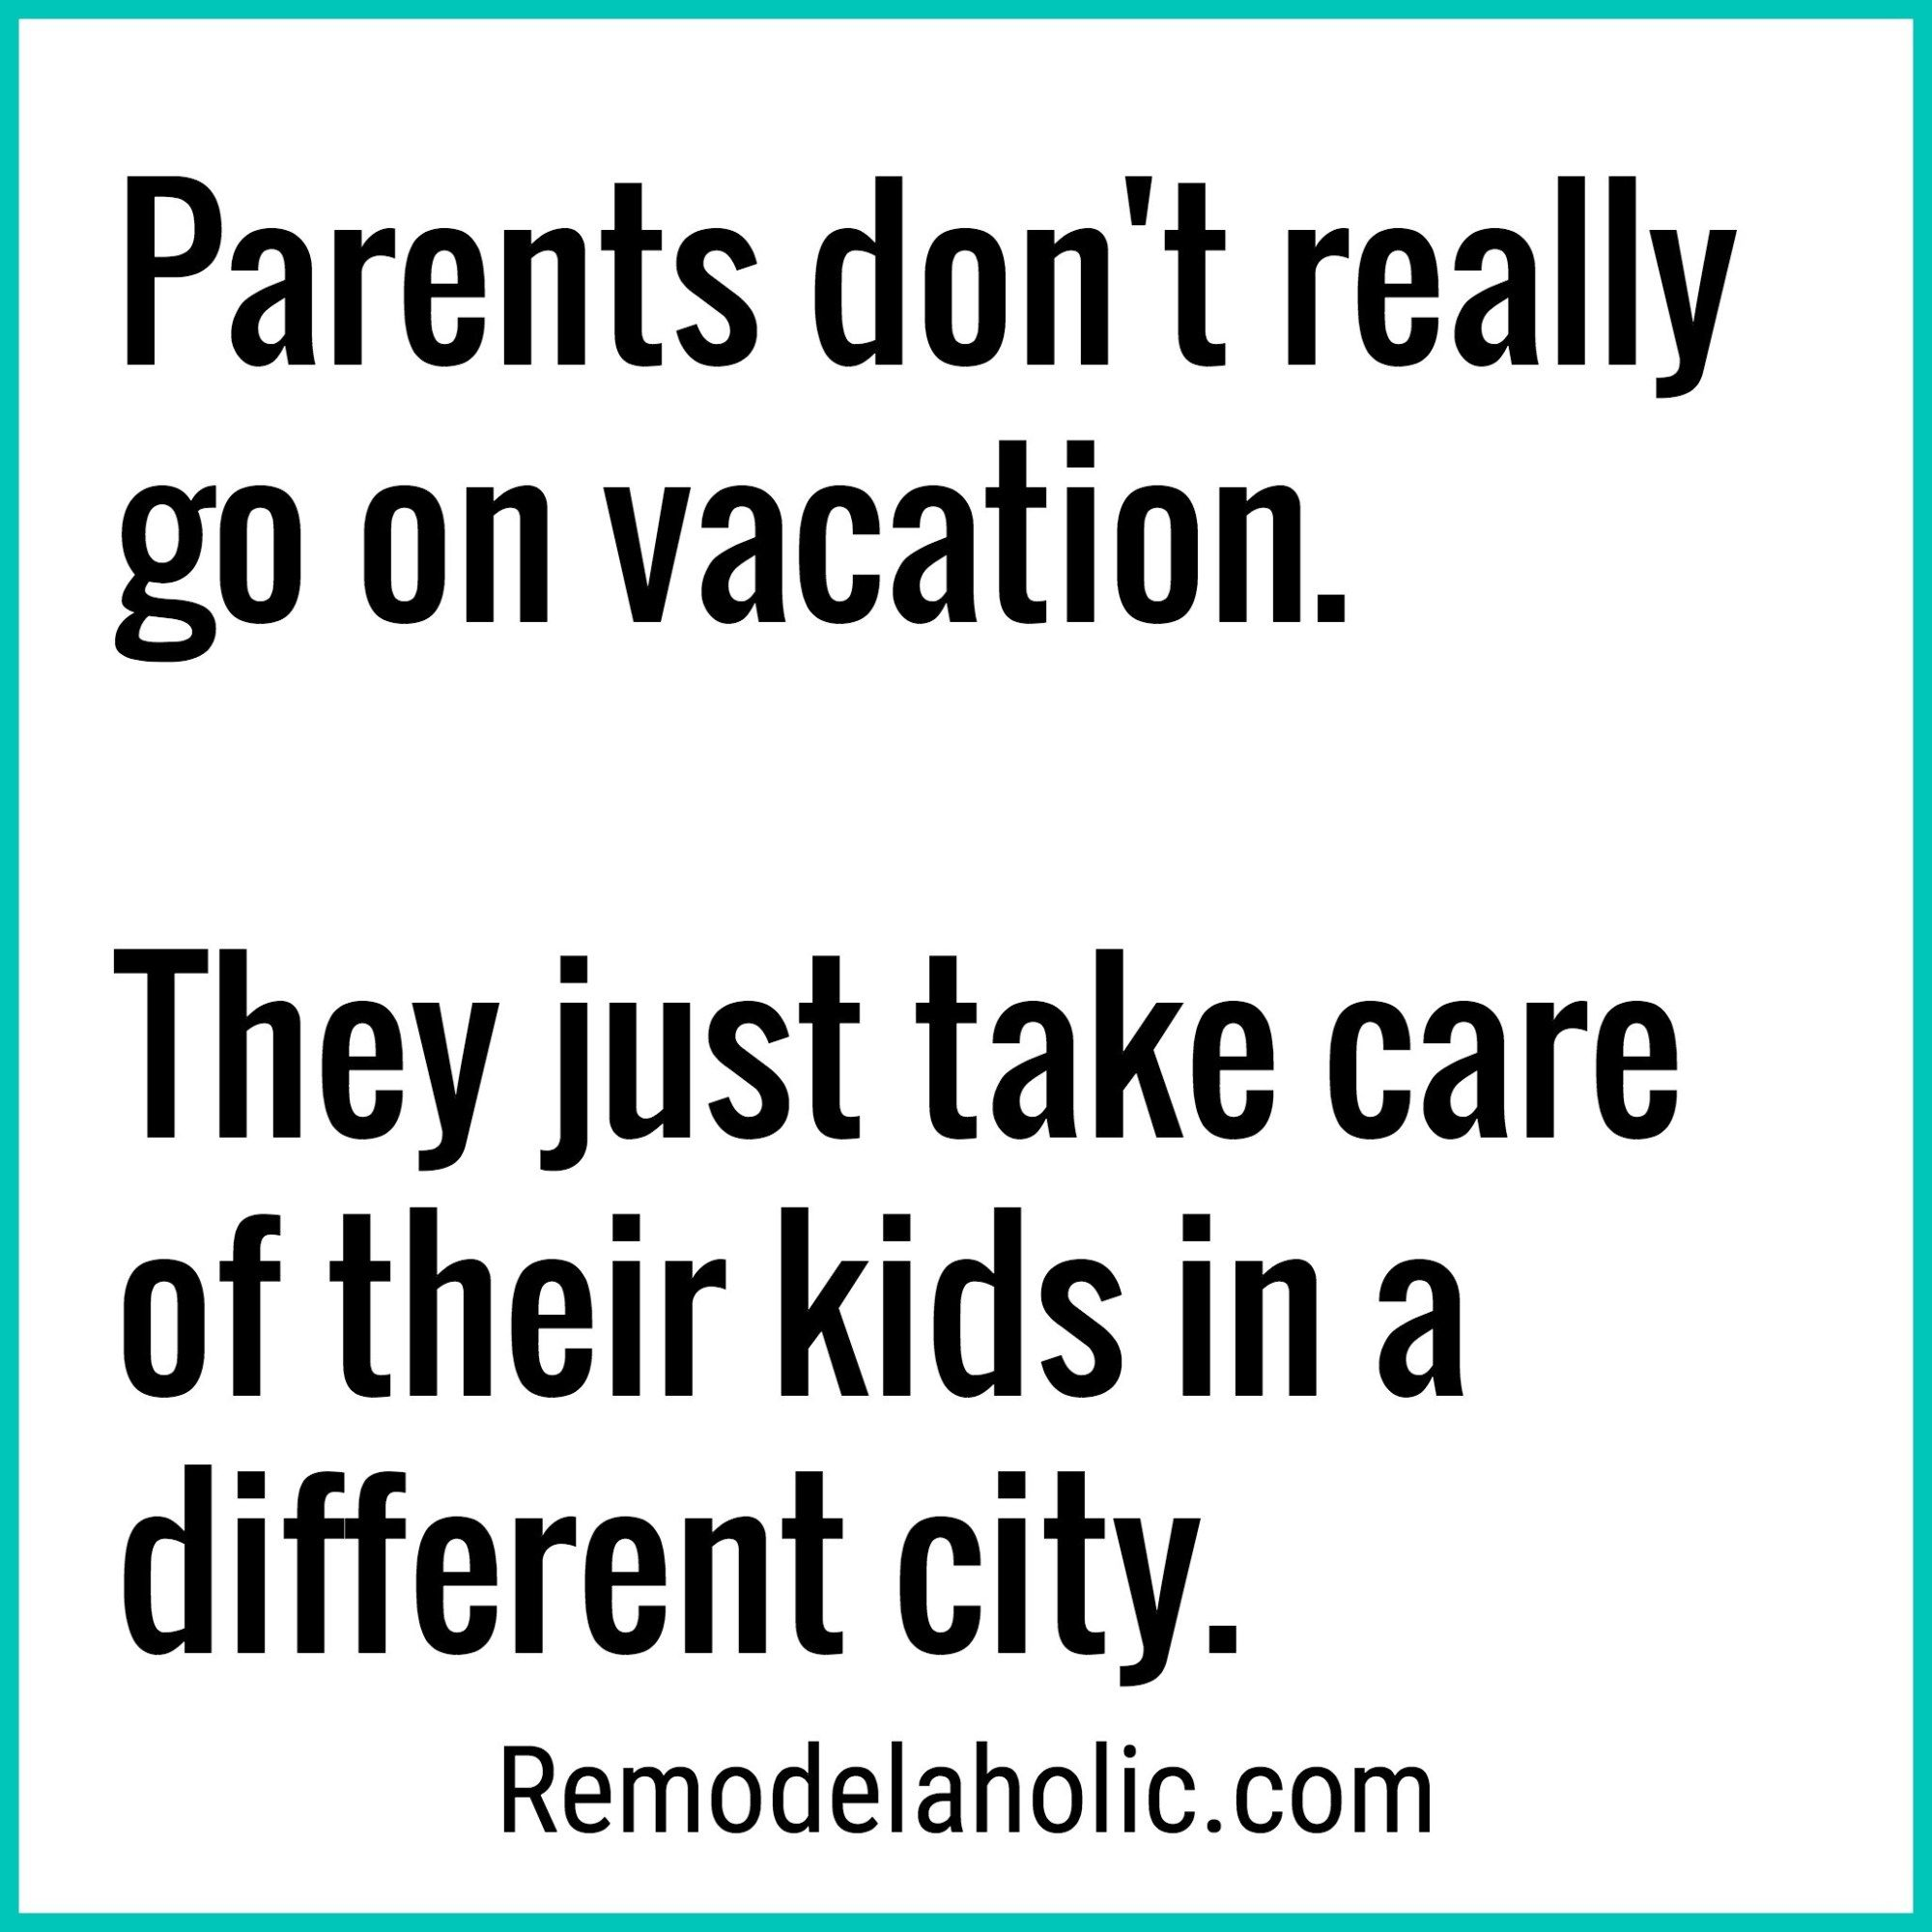 Parents Don T Really Go On Vacation Meme At Remodelaholic Com Parenting Funnymemes Quotes Funny Kid Memes Things Kids Say Mom Humor